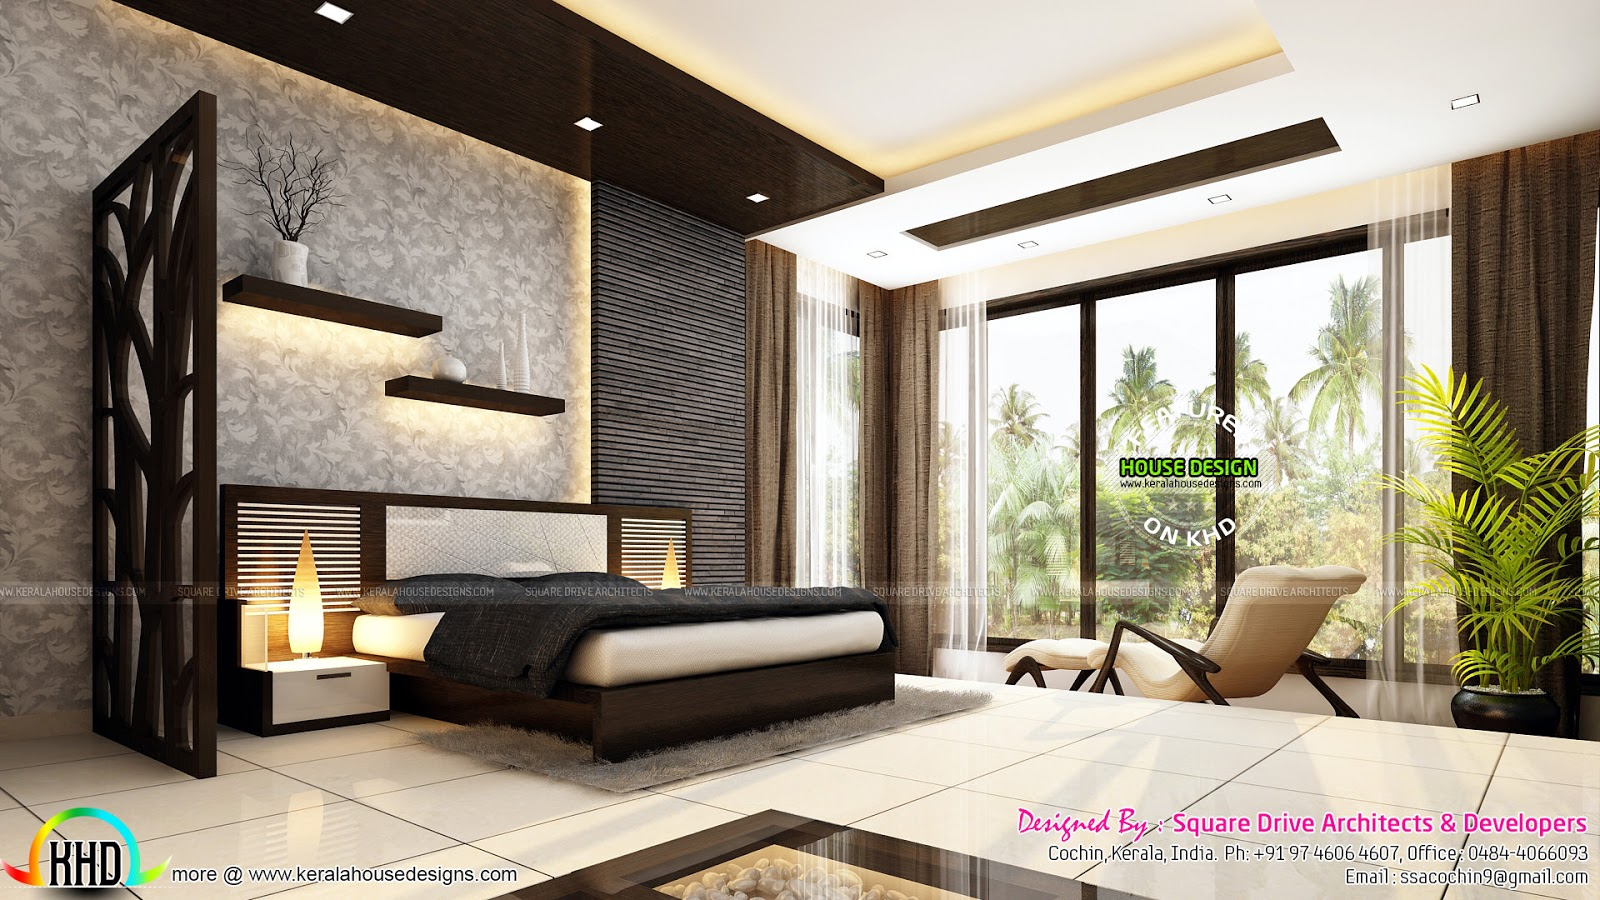 Very beautiful modern interior designs kerala home for House designs interior photos